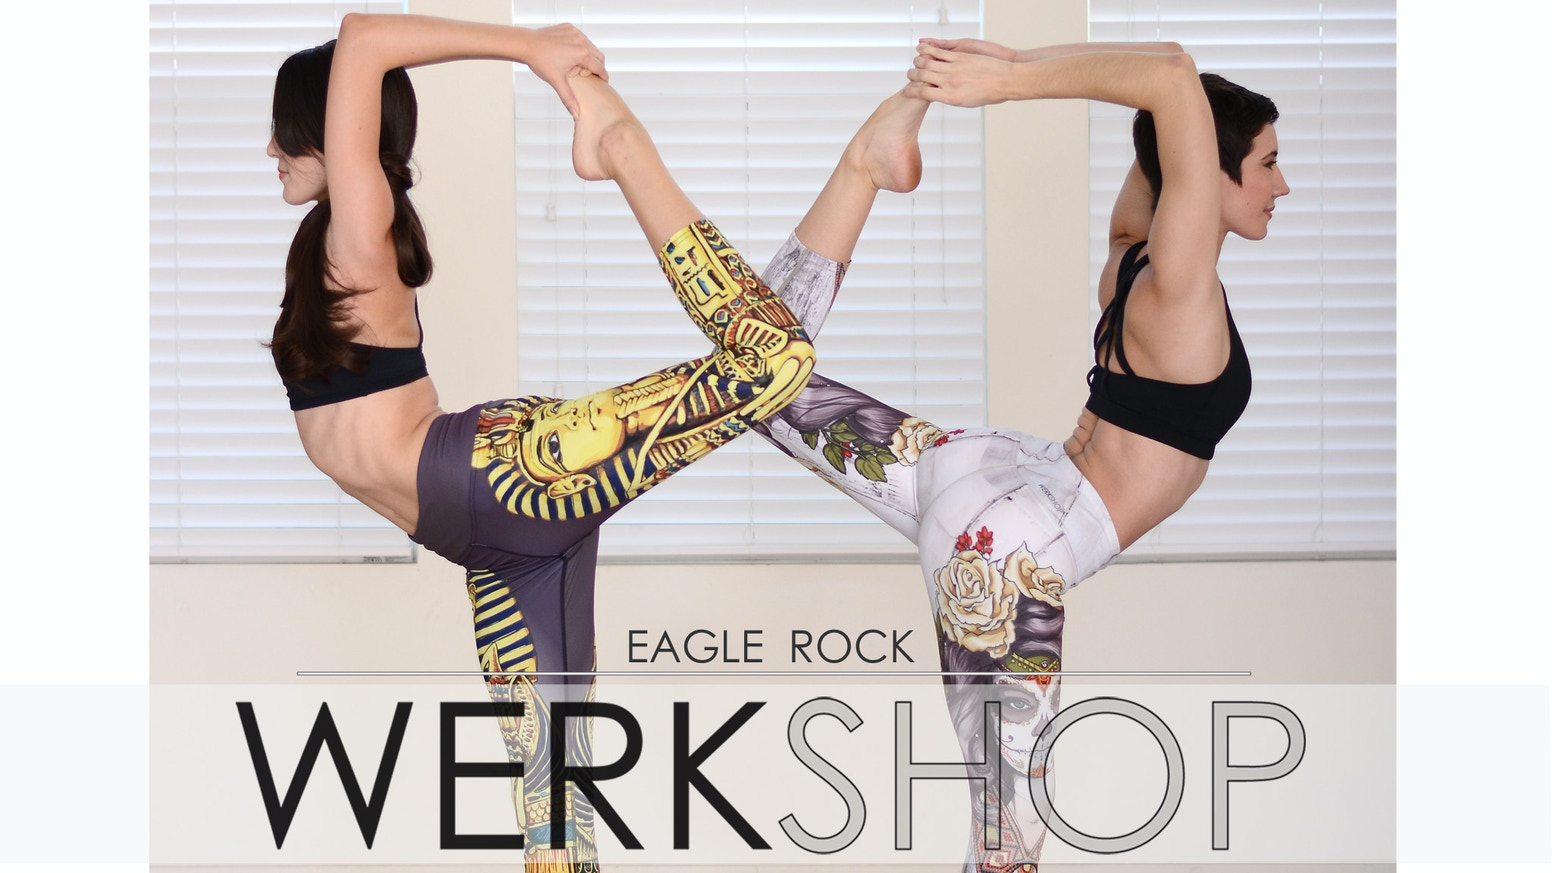 Designed for Fitness | Styled for Fashion®, Eagle Rock WERKSHOP® leggings.